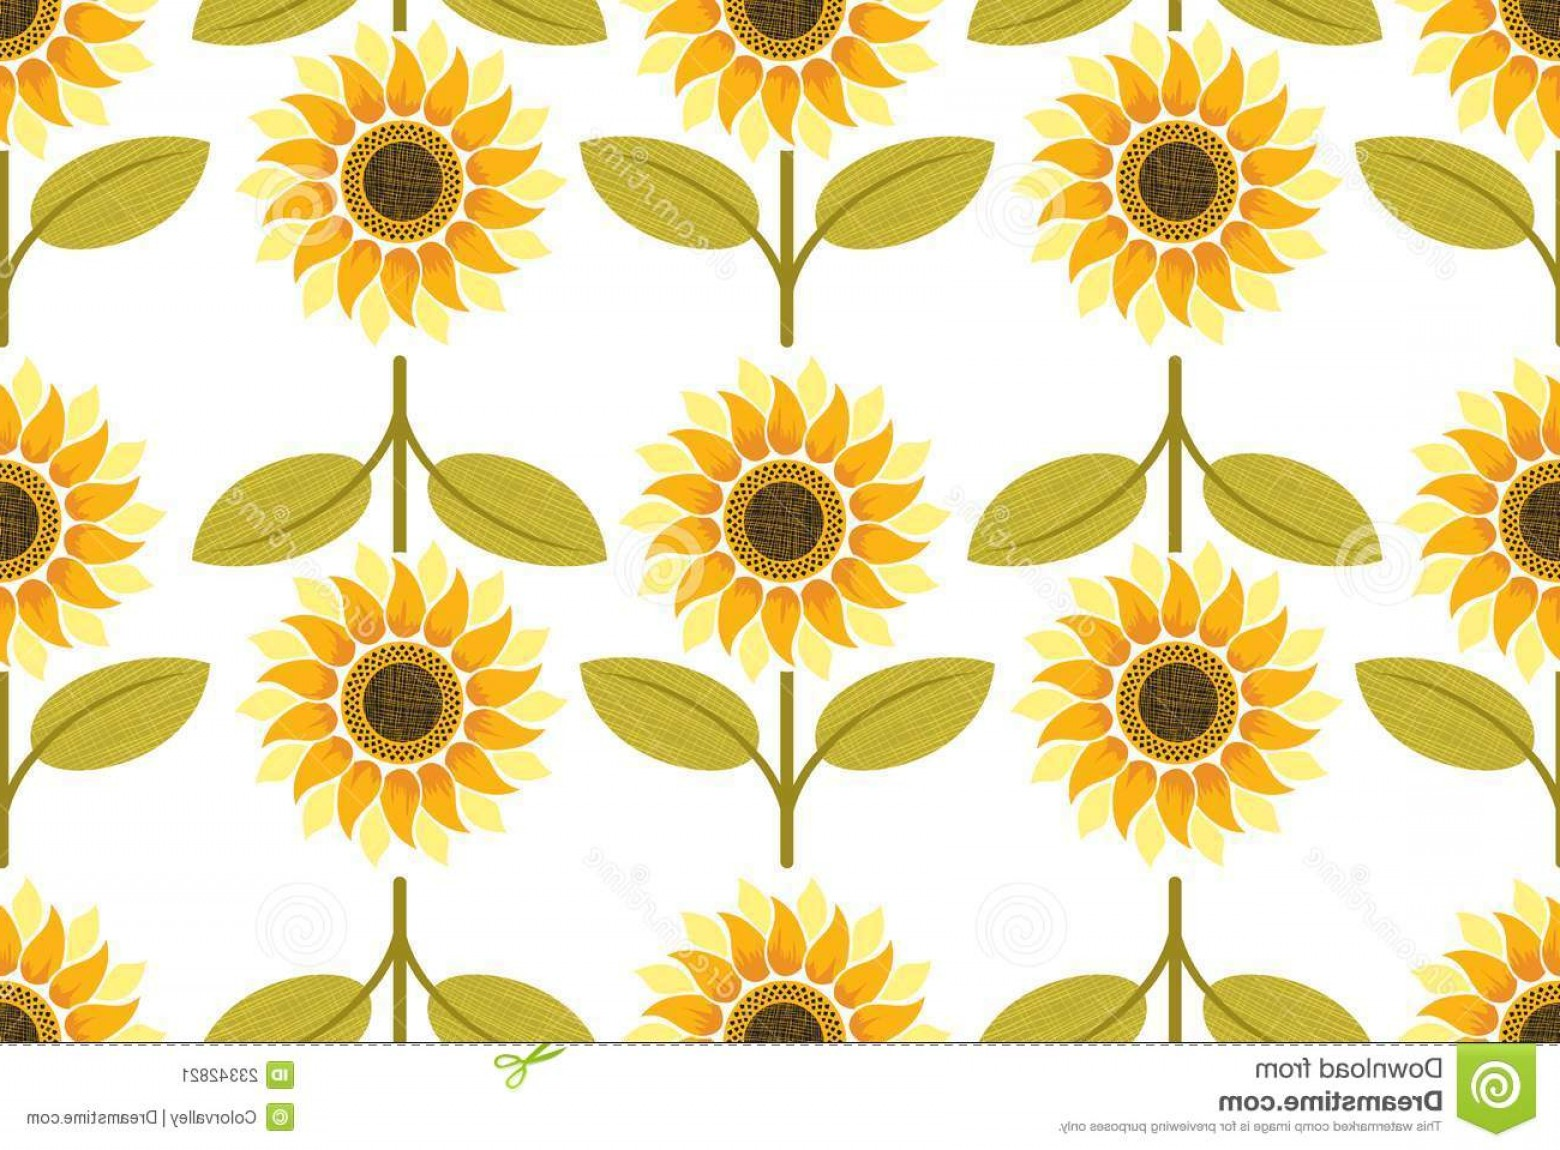 Sunflower Vector Pattern: Stock Image Yellow Sunflower Seamless Pattern Image